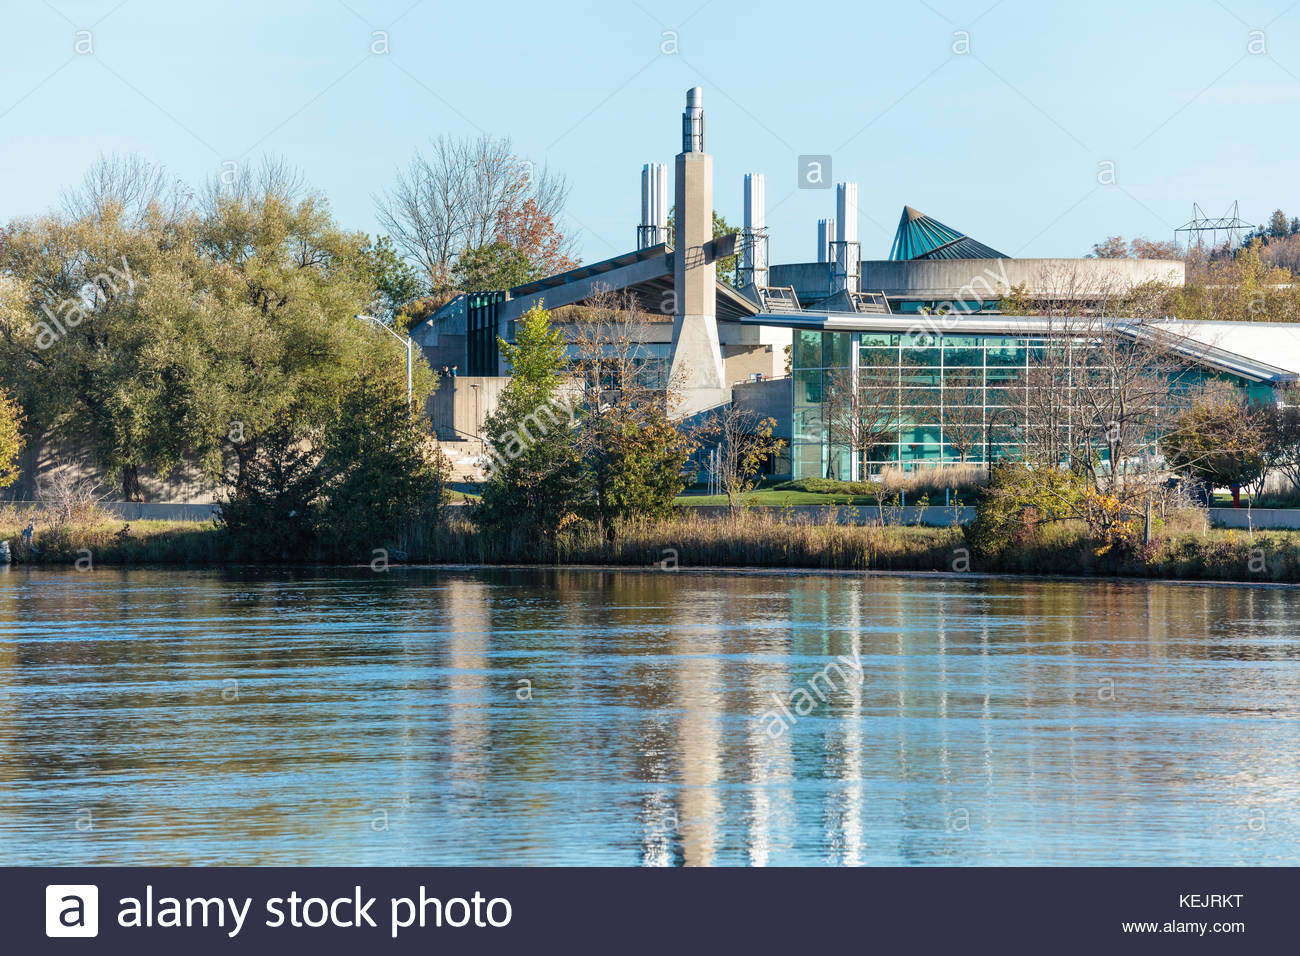 Science building part of Trent University on the Otonabee River at Peterborough Ontario Canada - Stock Image